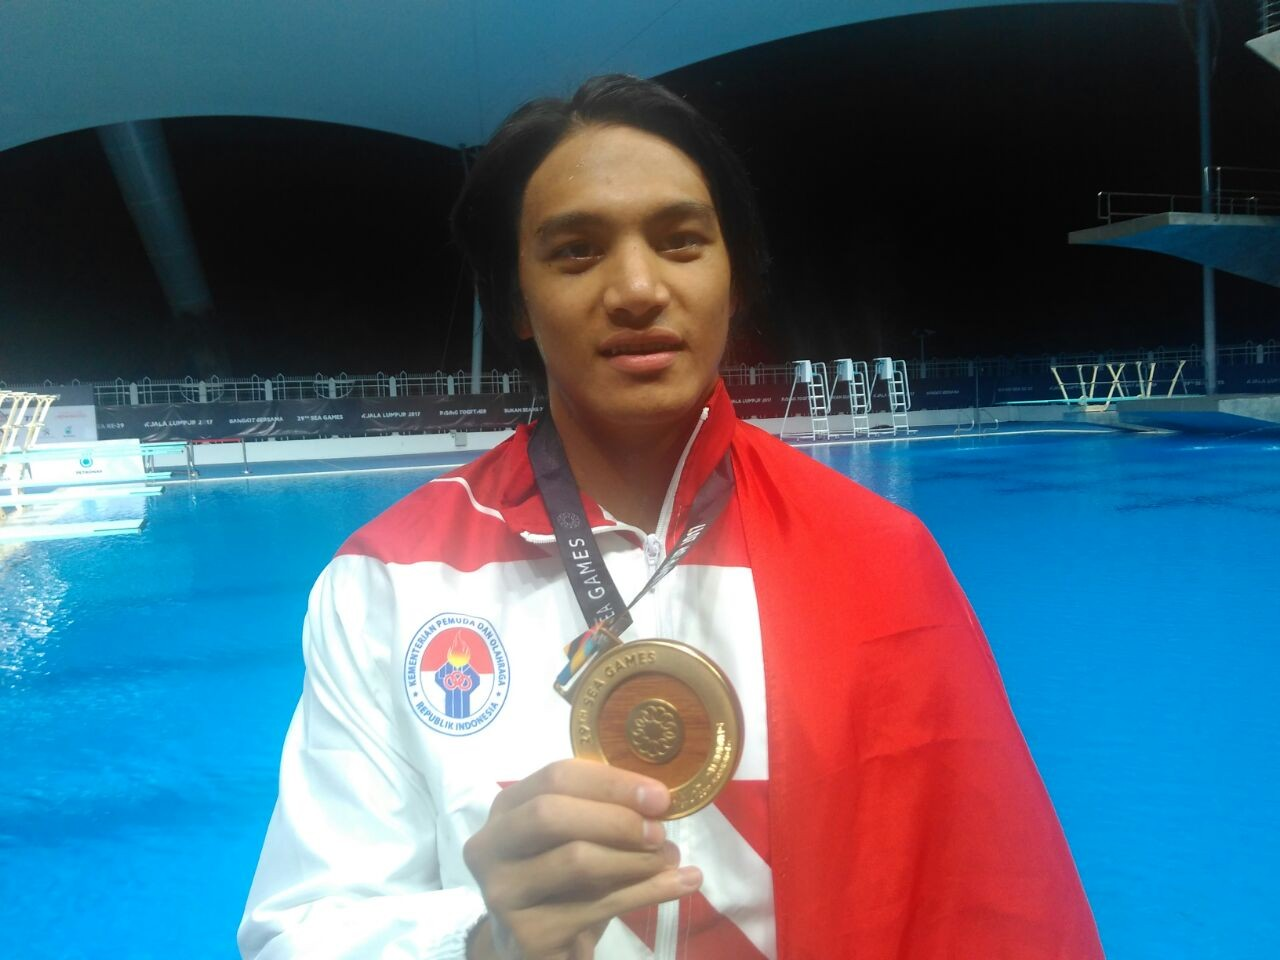 SEA Games: Gagarin gets gold in 100-m breaststroke